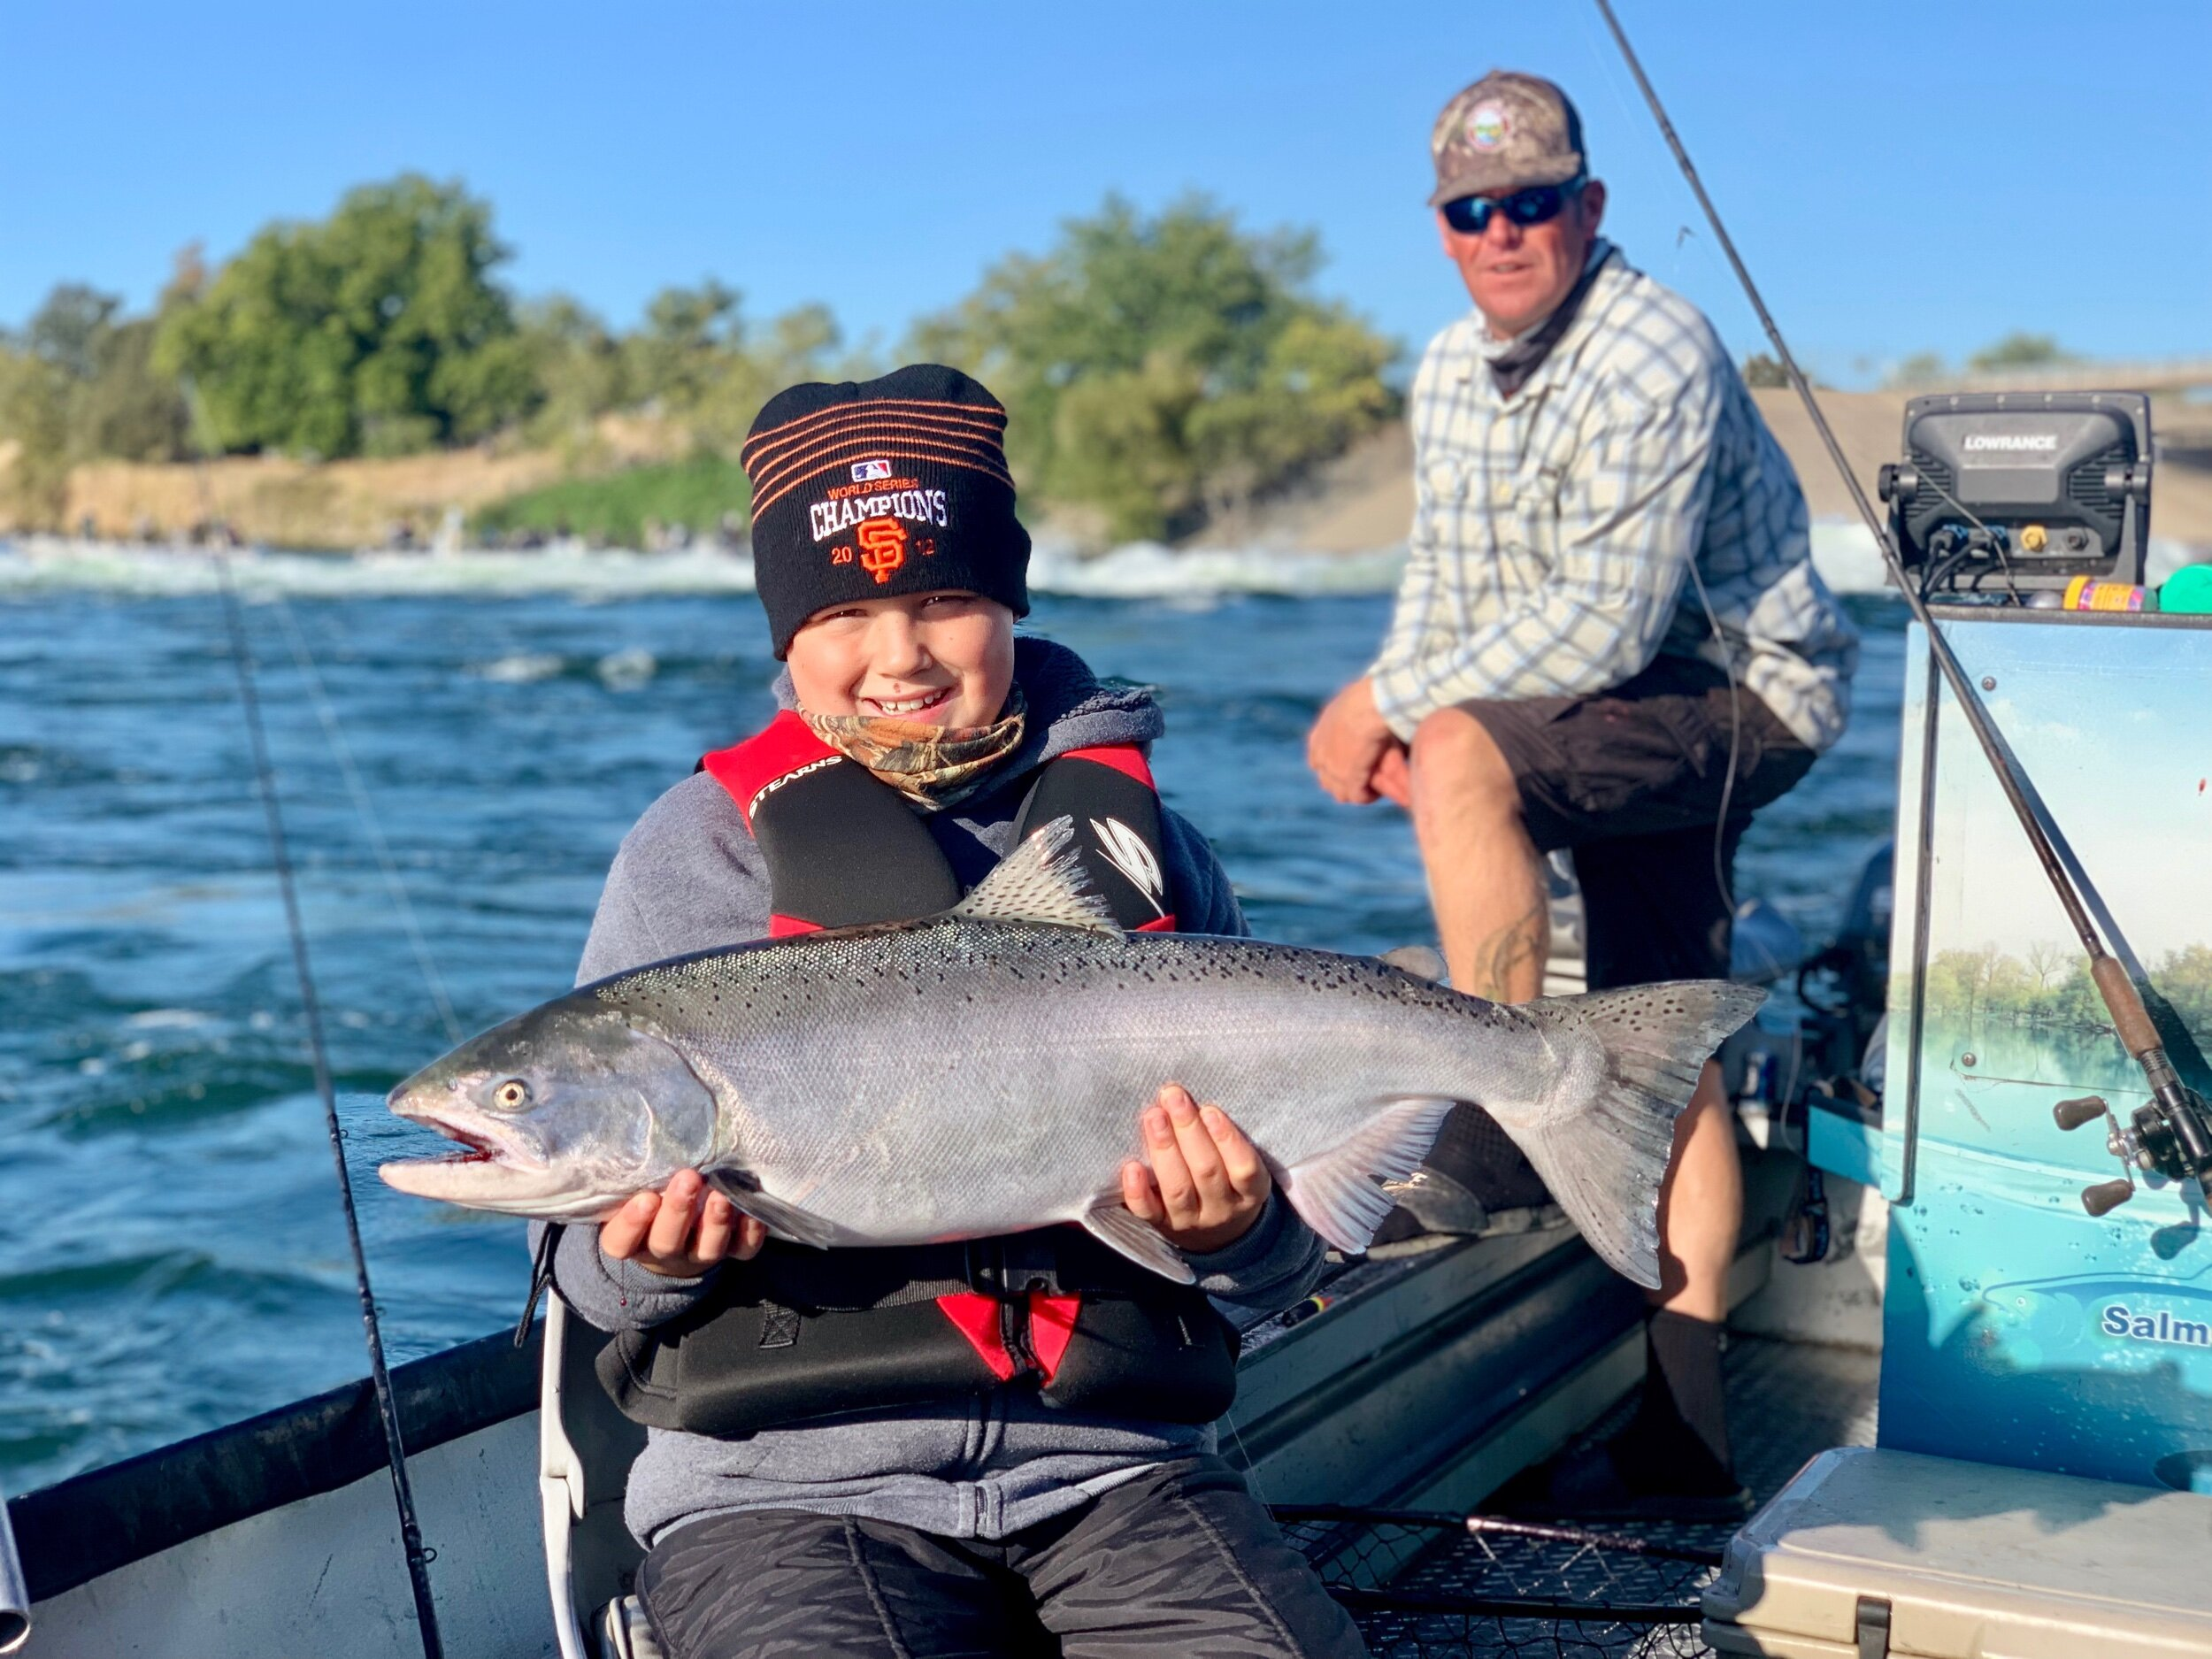 A happy young man holding his first ever king salmon he caught on the Feather River with fishing guide Ryan Tripp.